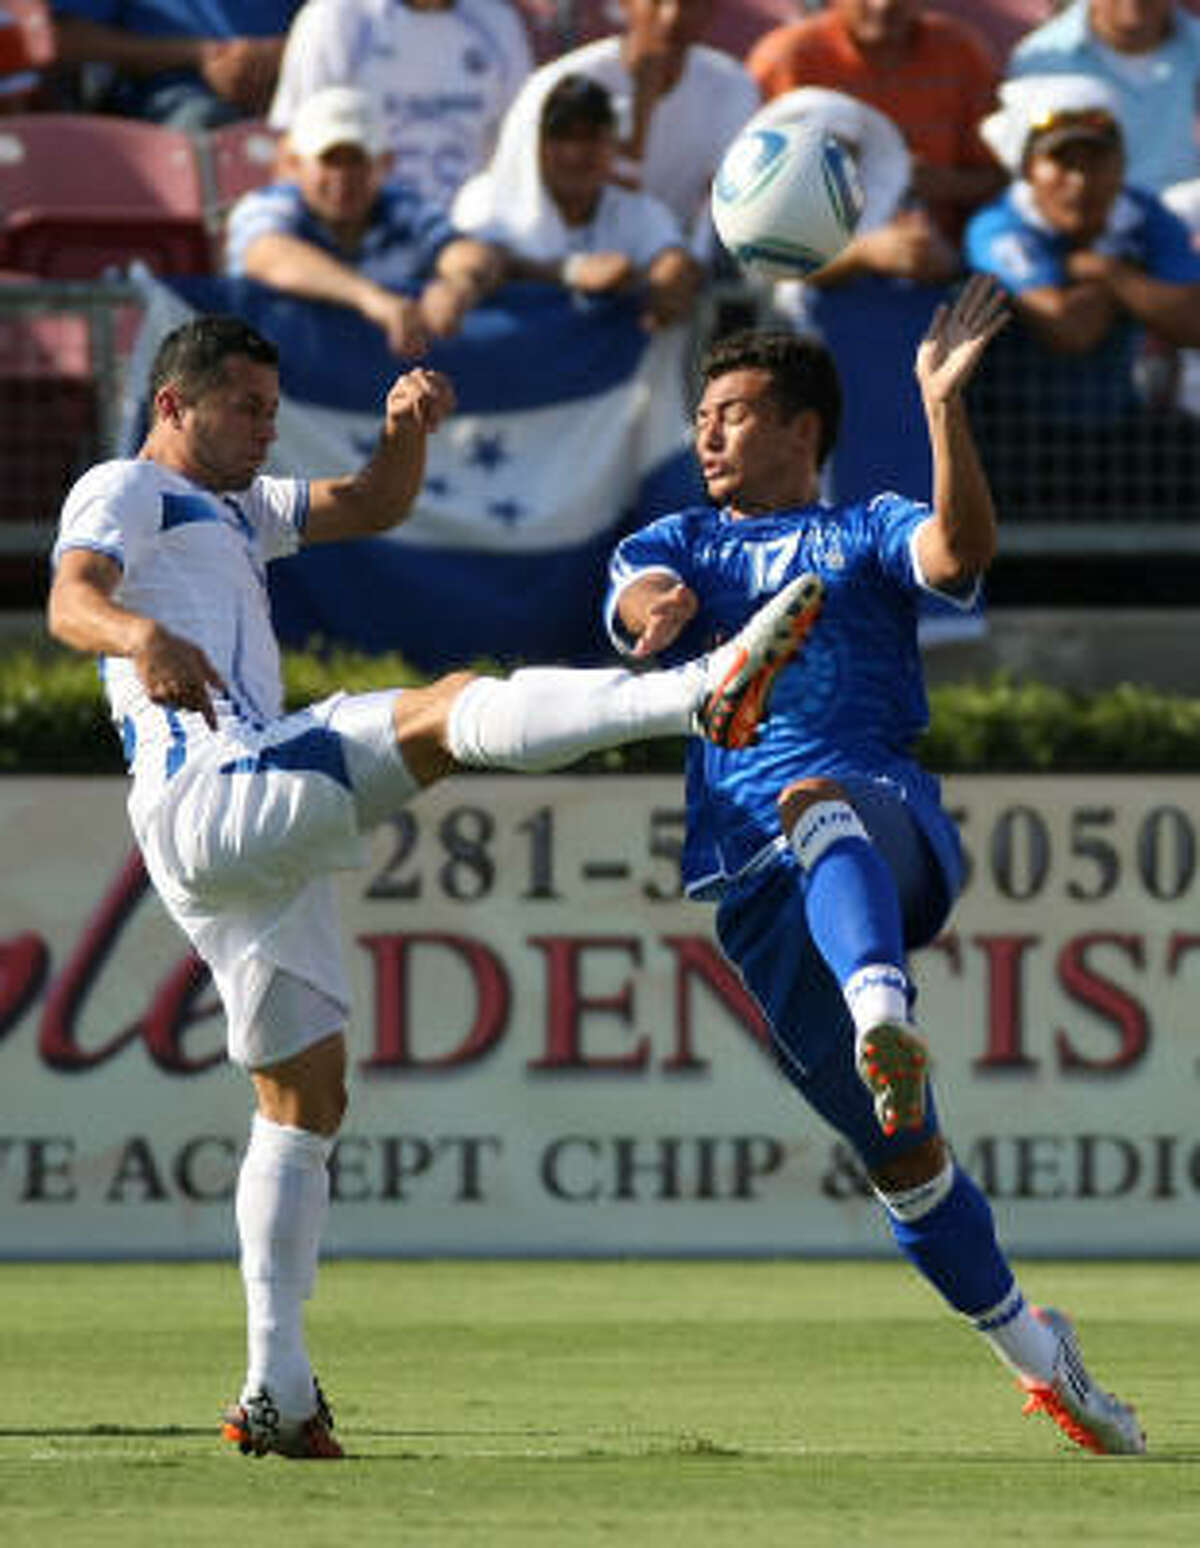 El Salvador's Mark Lester Blanco, right, tries to avoid getting kicked in the face by Honduras' Alfredo Antonio Mejia in the first half.